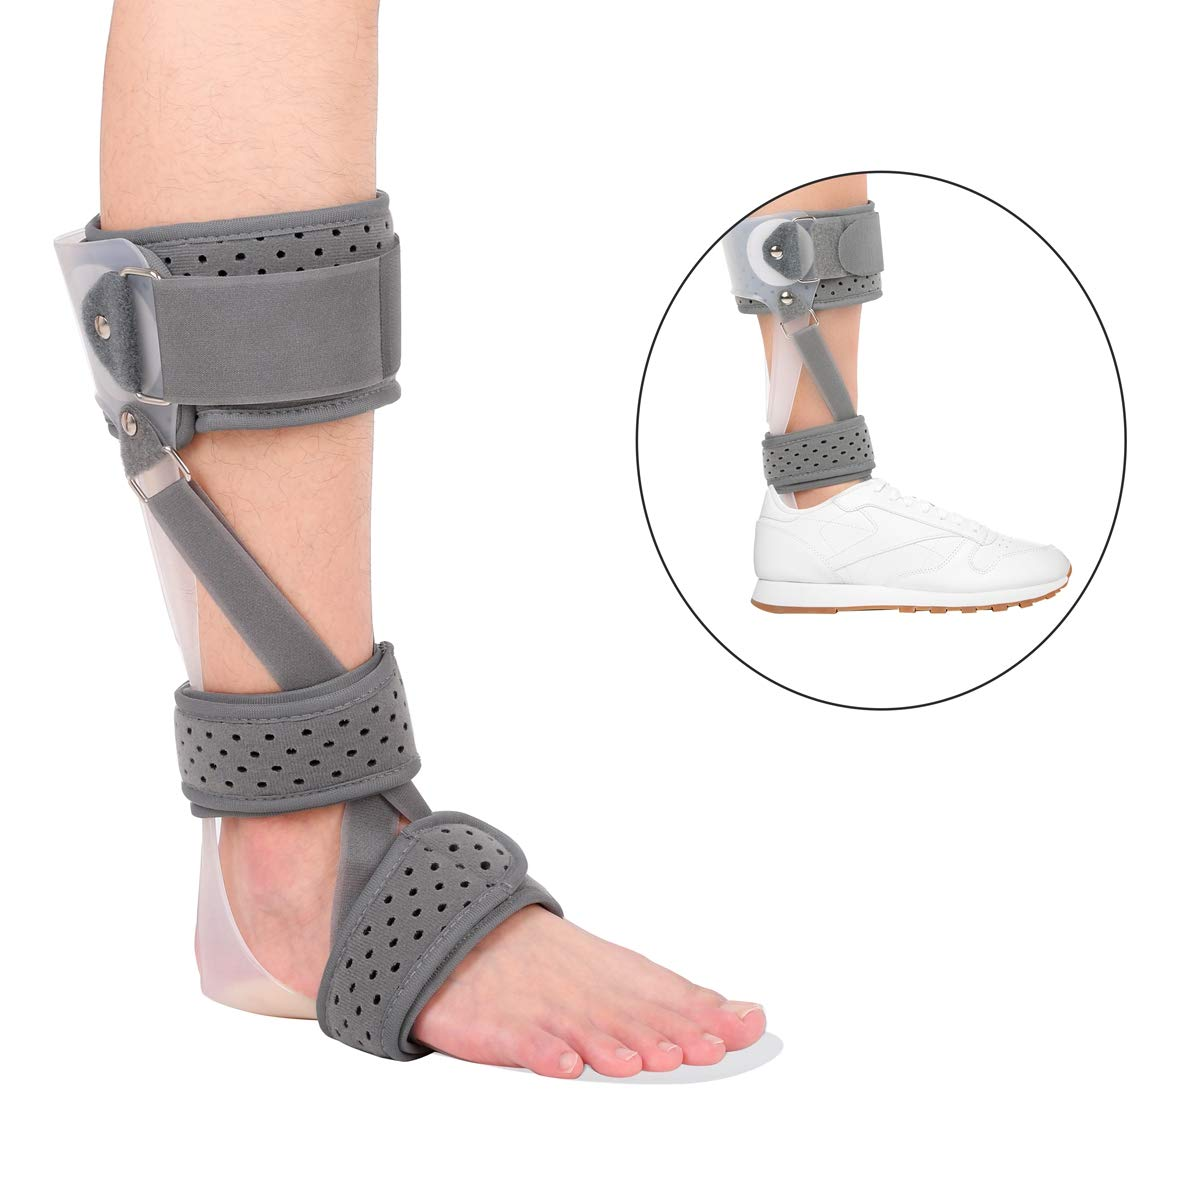 Ankle Foot Orthosis, 3 in 1 Medical Drop Foot Postural Correction Brace AFO Brace for Stroke Foot Drop Charcot Marie Tooth Disease (Right/L) by Furlove